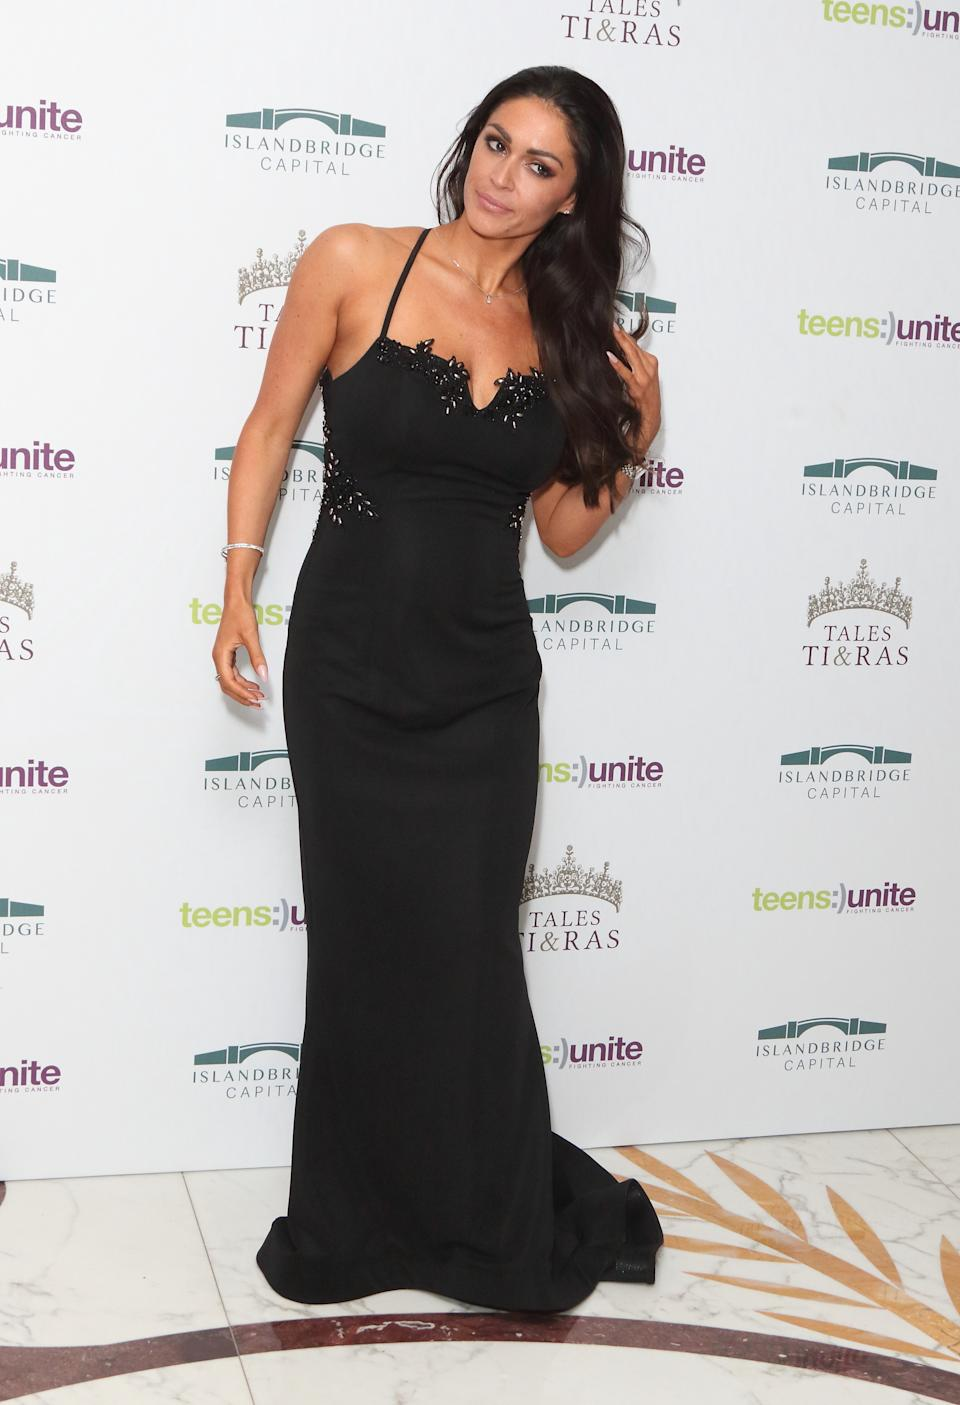 LONDON, -, UNITED KINGDOM - 2018/11/30: Casey Batchelor seen at the Teens Unite, Tales and Tiaras Gala at The Dorchester, Park Lane. (Photo by Keith Mayhew/SOPA Images/LightRocket via Getty Images)